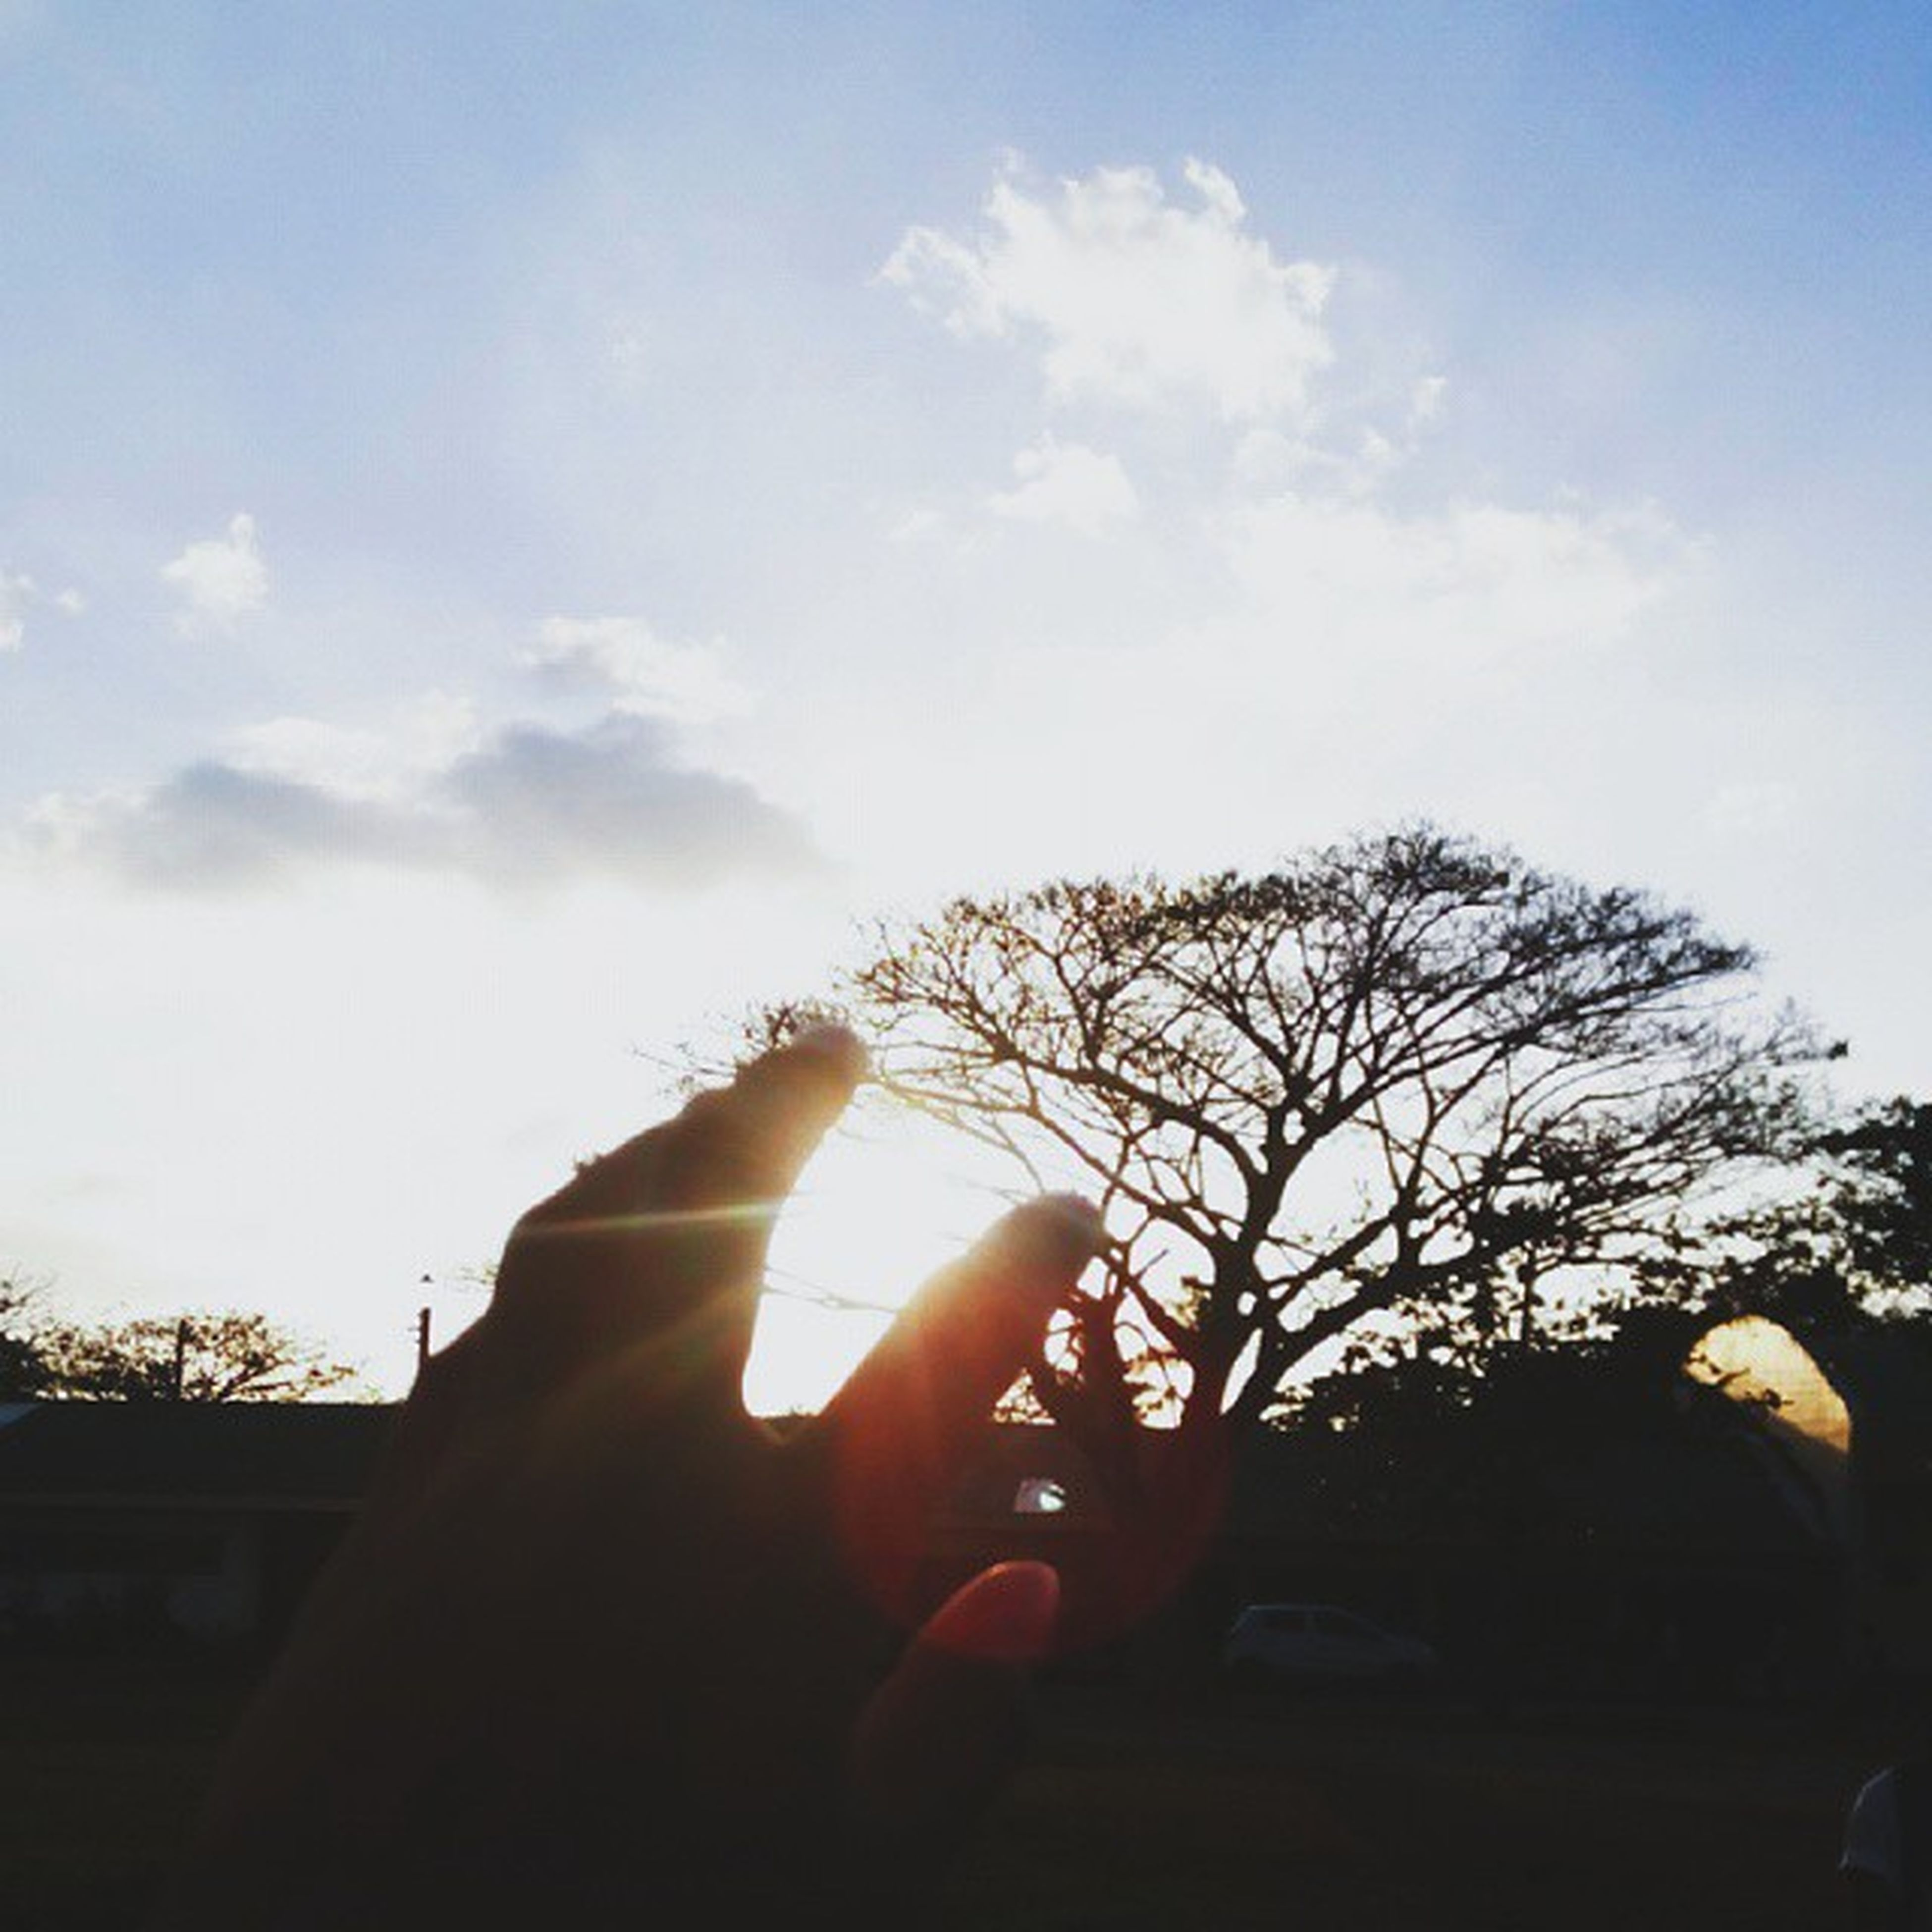 silhouette, person, tree, sky, part of, sun, sunset, sunlight, unrecognizable person, cropped, personal perspective, sunbeam, human finger, lens flare, low angle view, nature, back lit